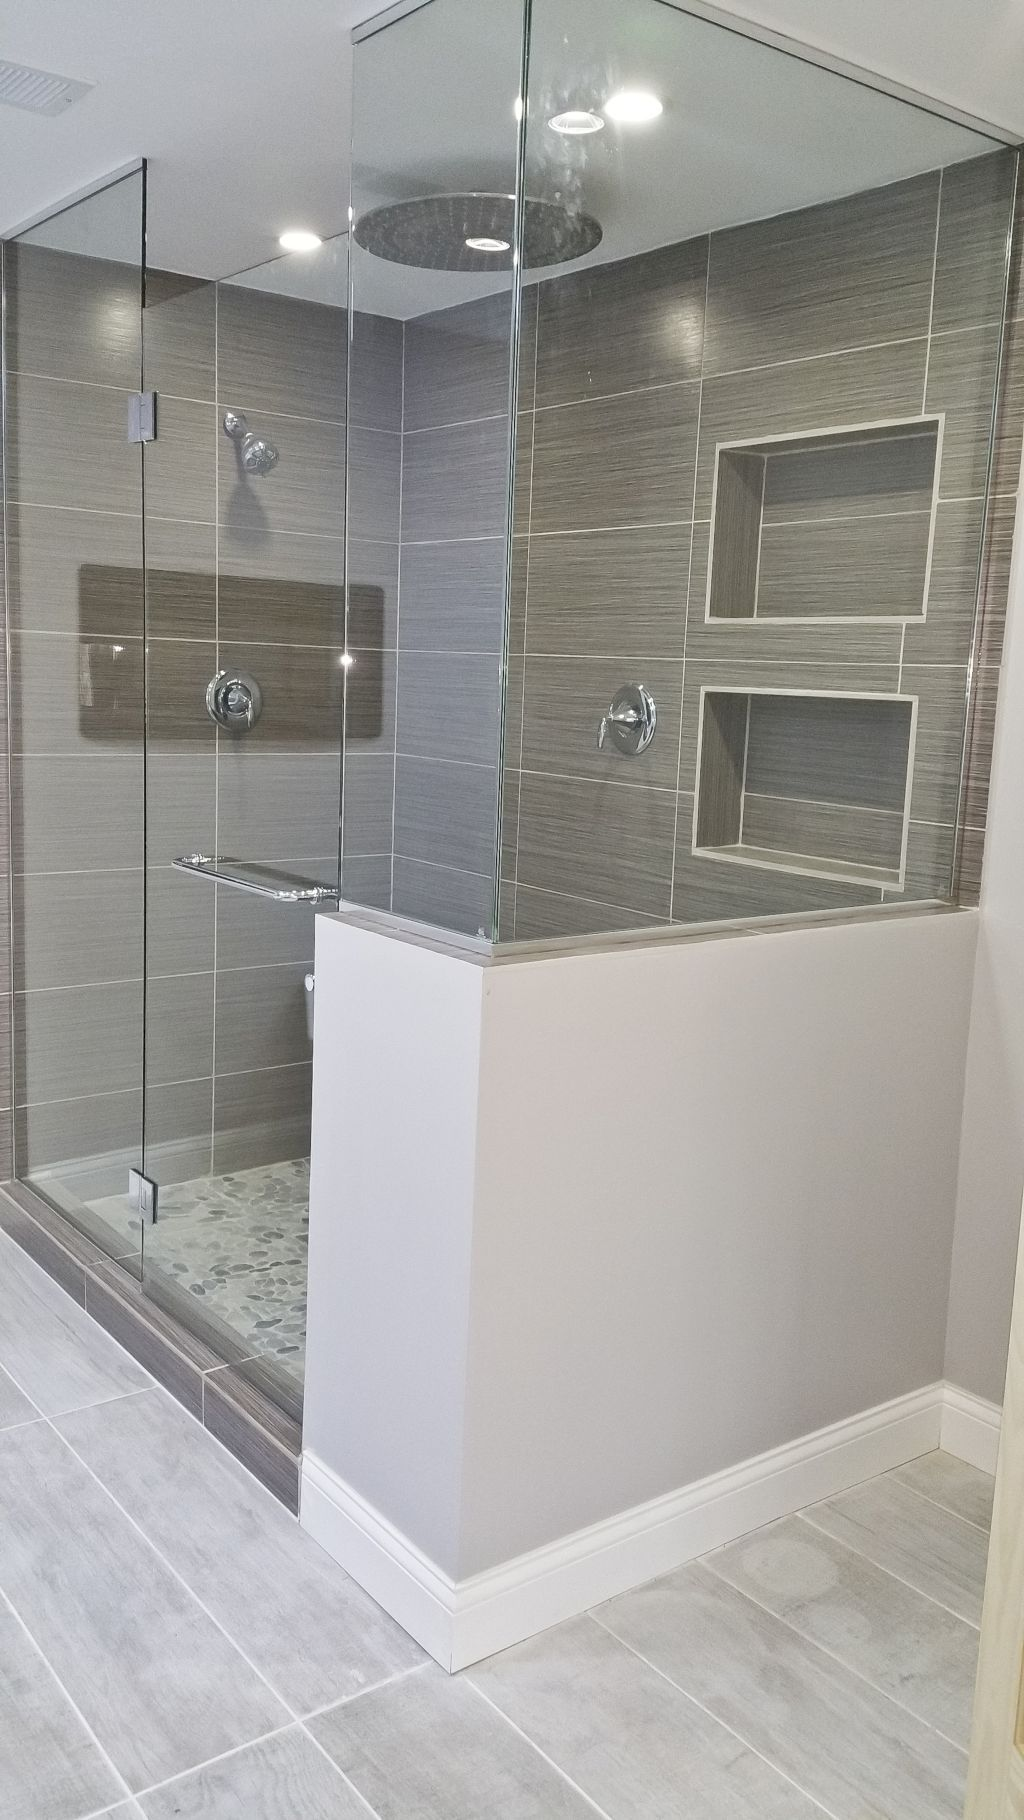 Awesome 44 Awesome Master Bathroom Ideas Https Homeylife Com 44 Awesome Master Bathroom Idea Bathroom Remodel Master Modern Master Bathroom Bathrooms Remodel